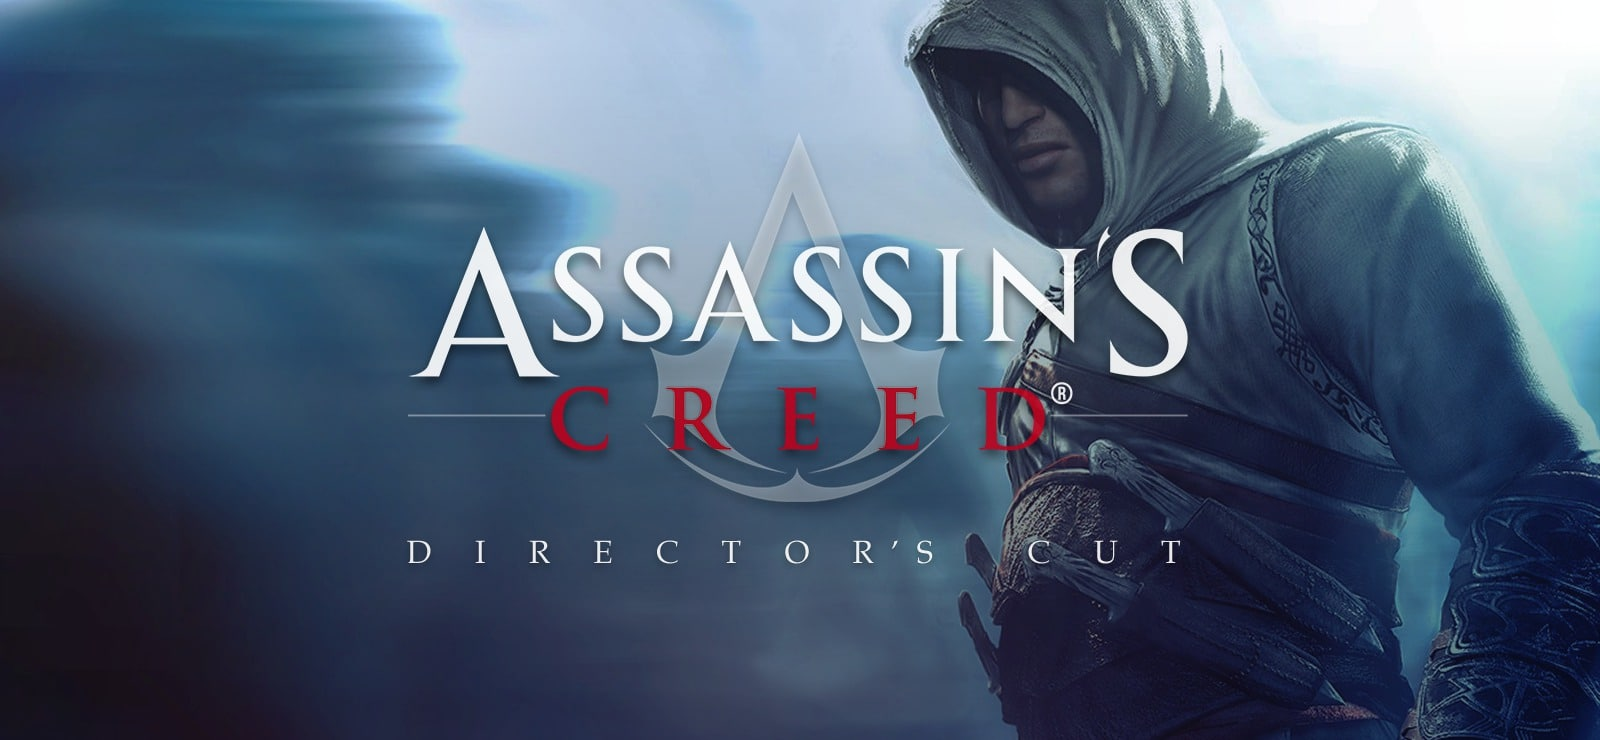 Assassin'S Creed: Director'S Cut varies-with-device